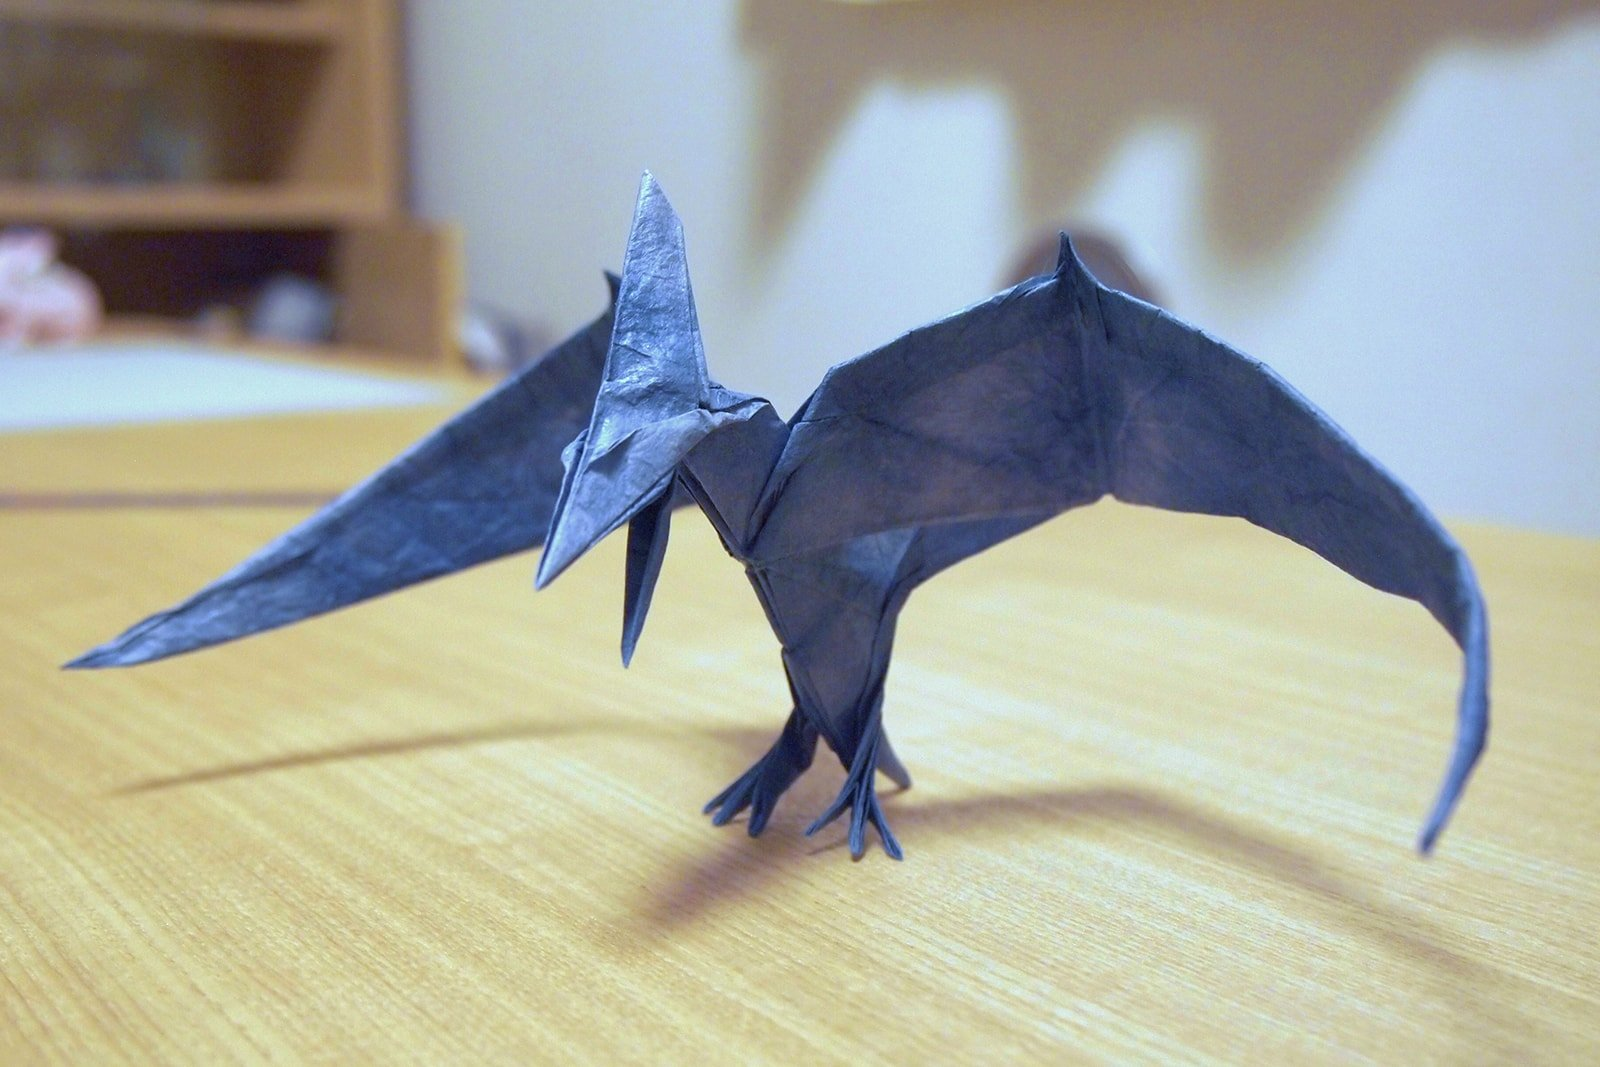 some of the best origami ive seen in 65 million years